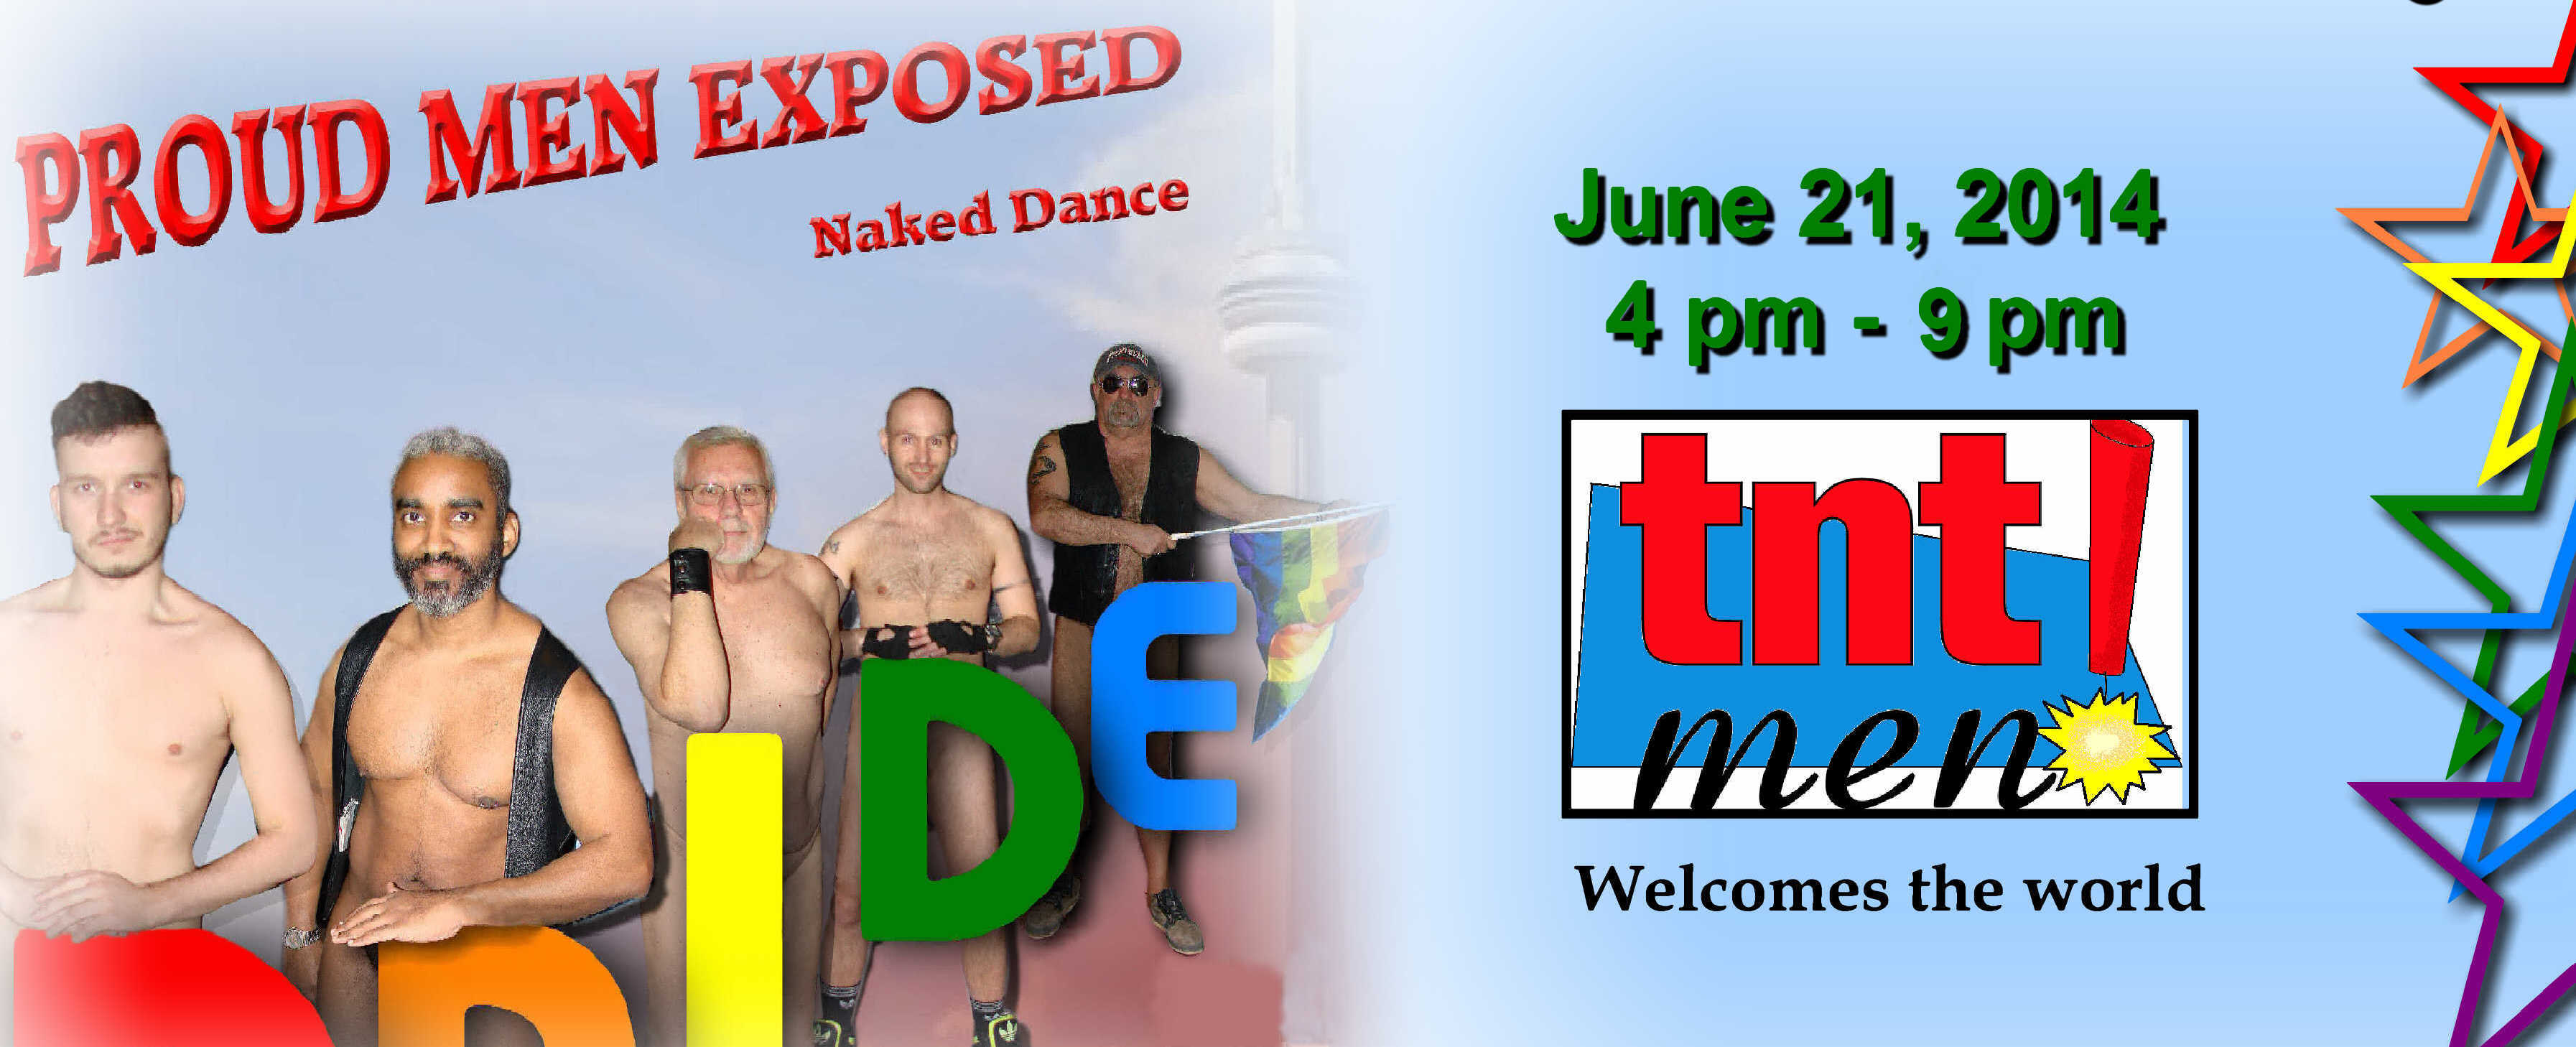 Proud Men Exposed Naked Dance